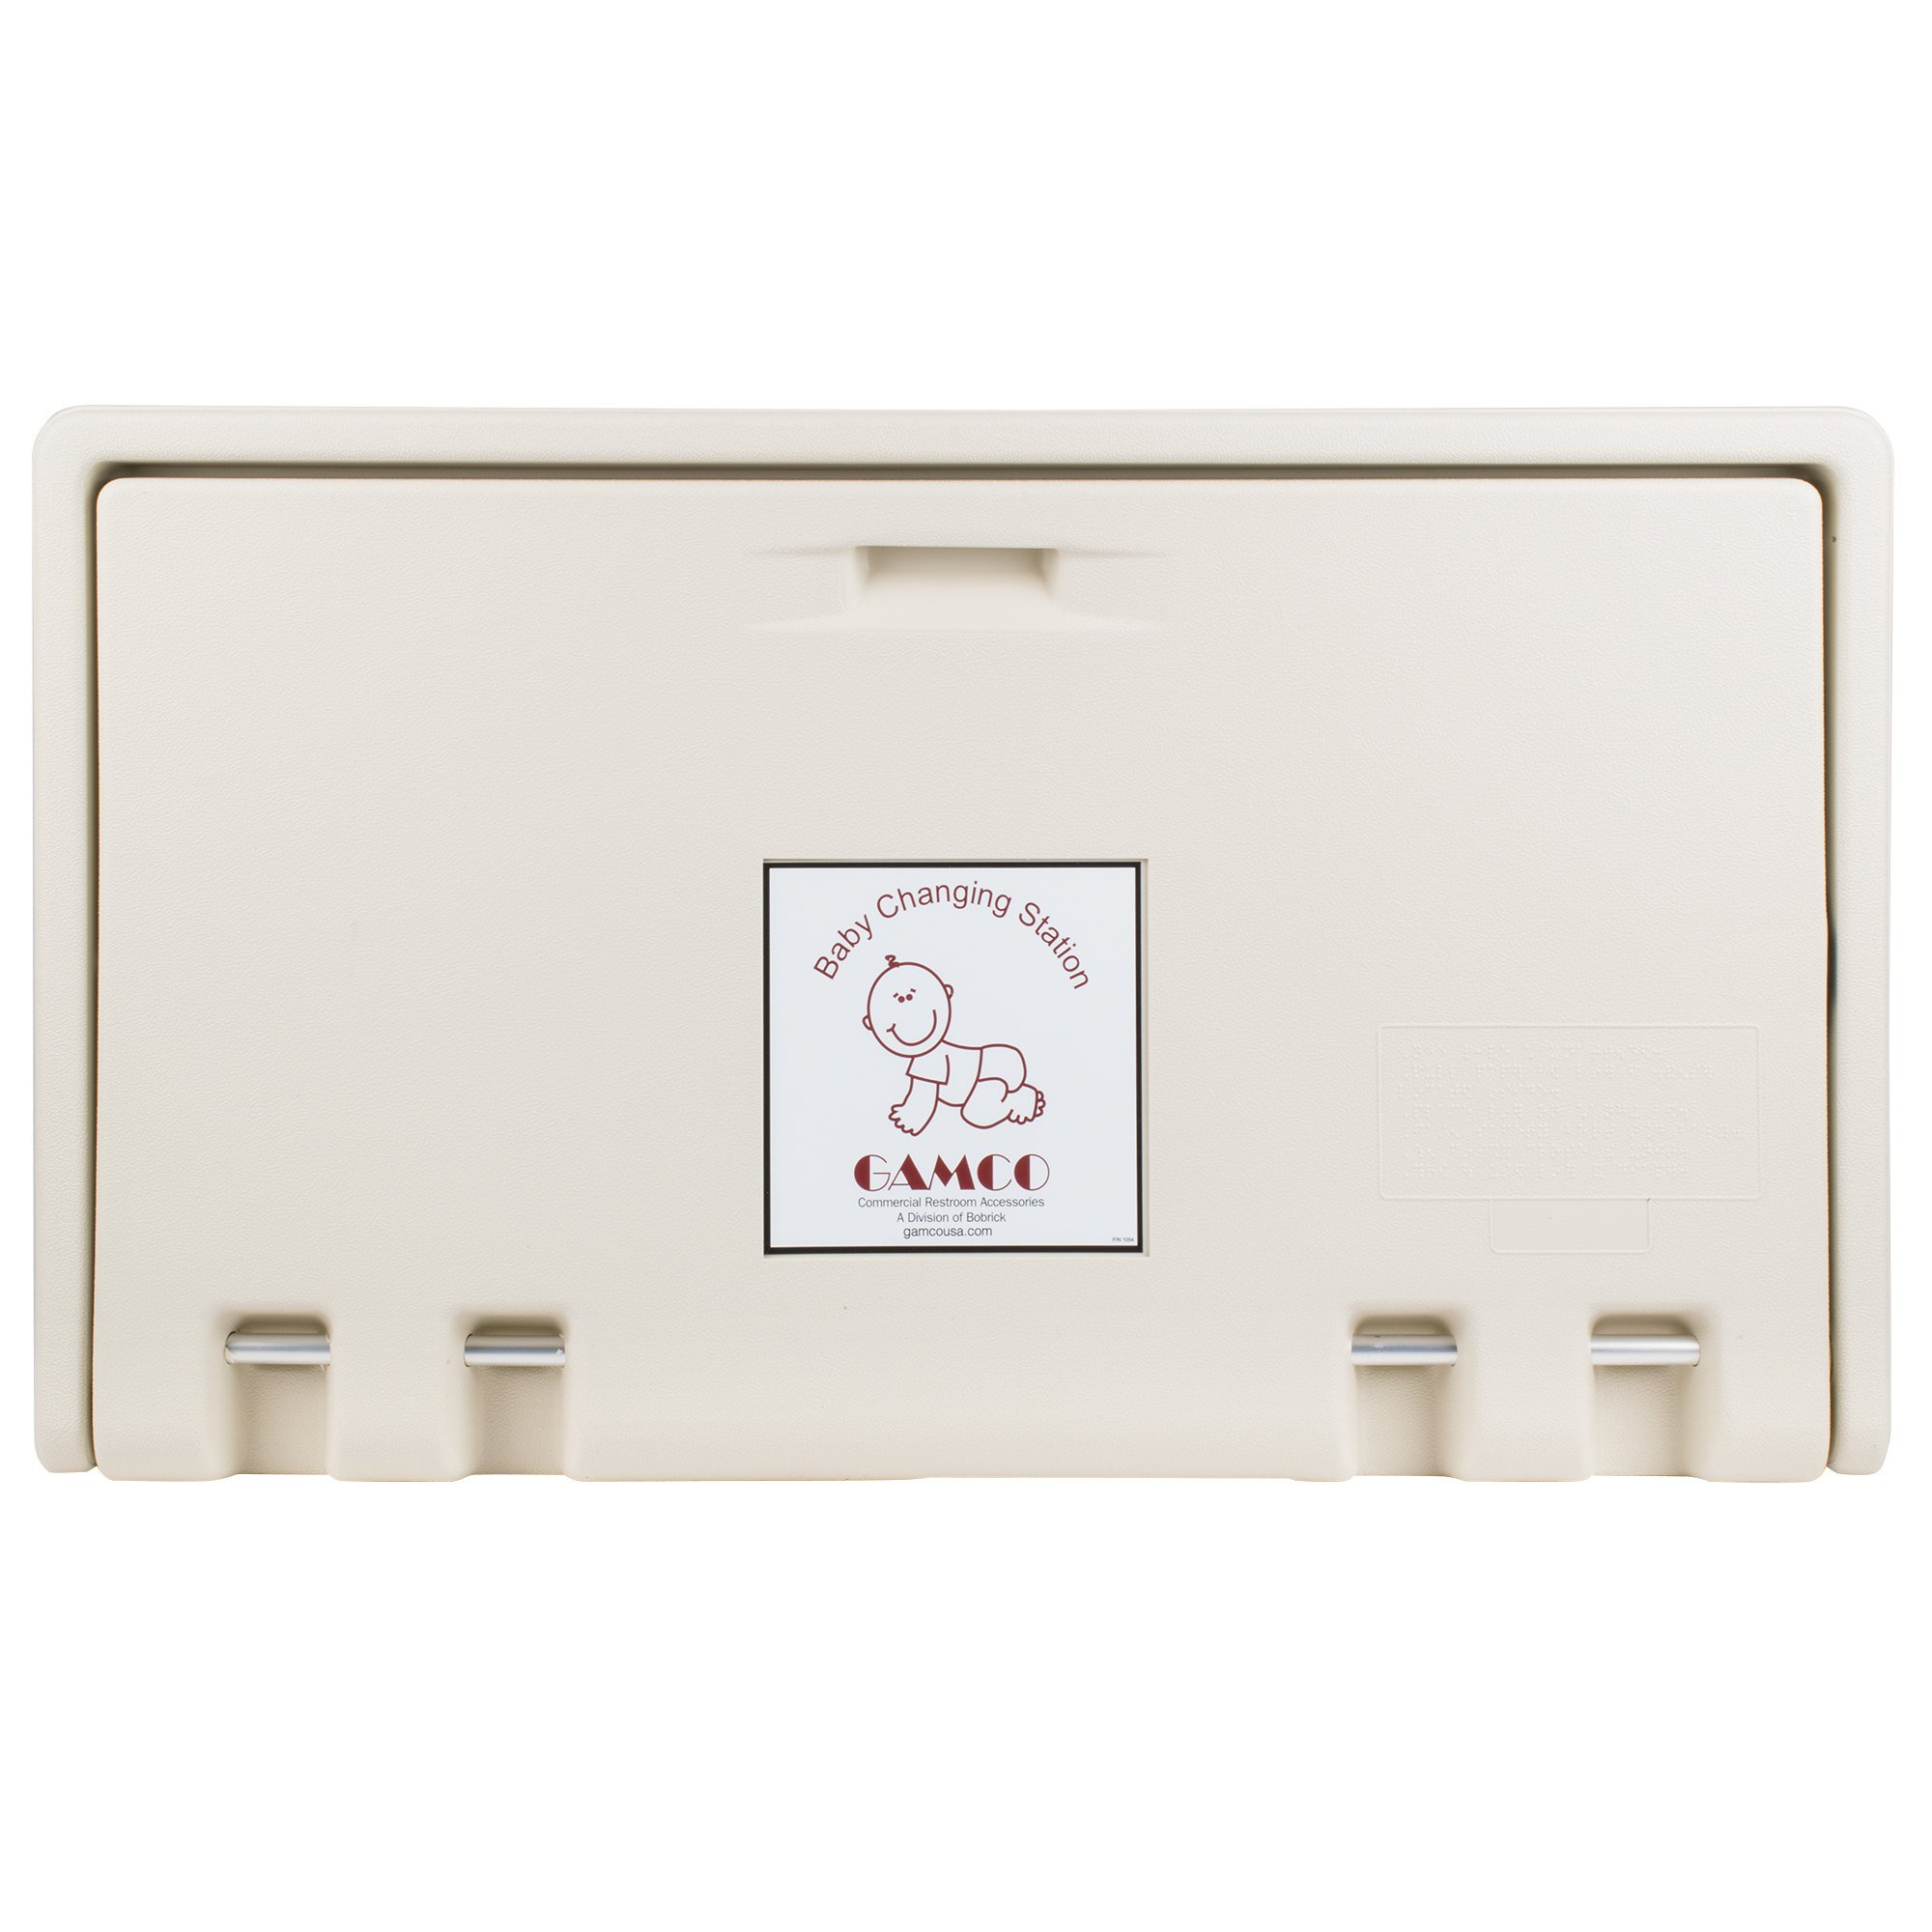 Koala Kare KB200-00 Horizontal Wall Mounted Baby Changing Station, Cream (Light Cream) by Koala Kare